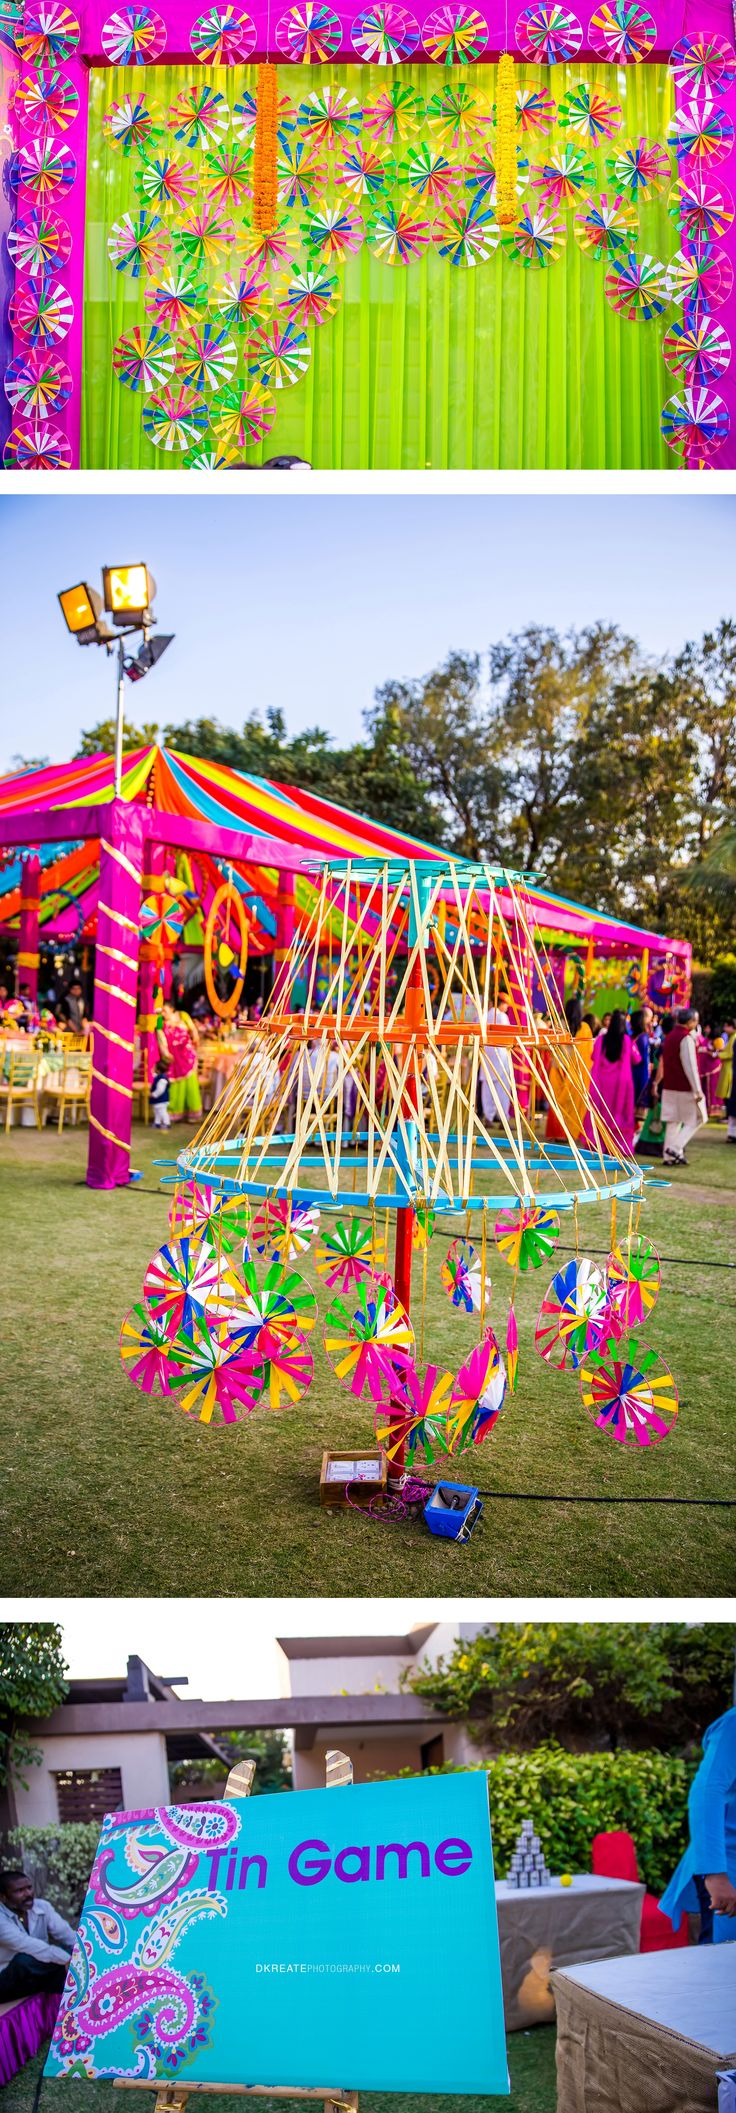 Indian Wedding Decor Inspiration |  Indian wedding backdrop ideas. Colorful. Mela themed. Colorful printed Sign boards for games and designated areas